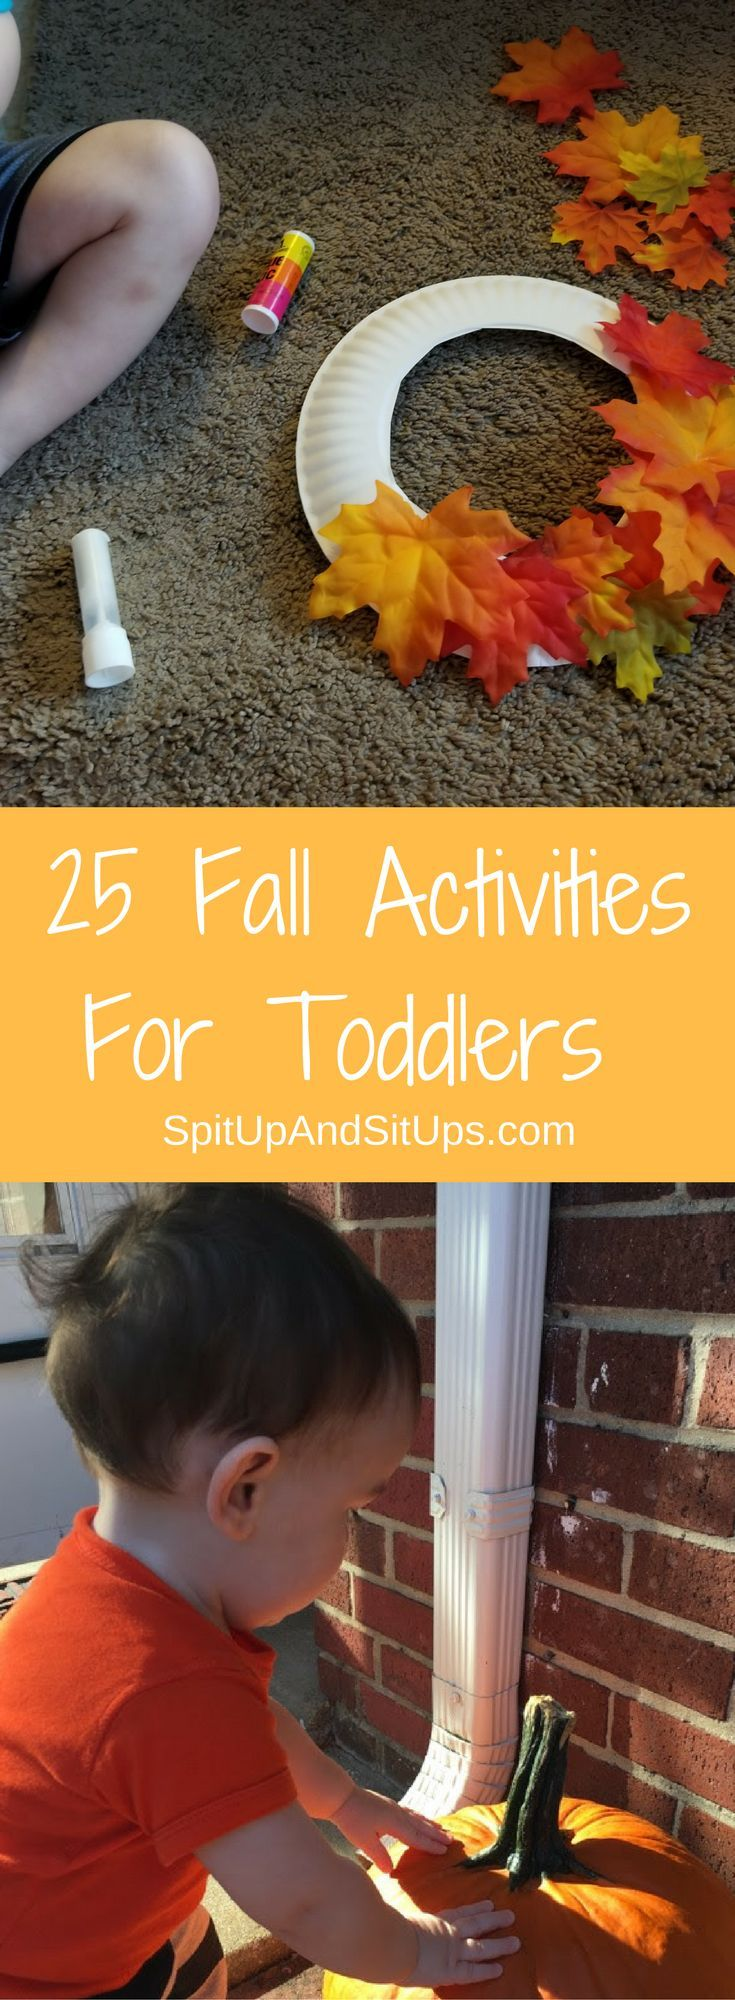 25 Fall Activities for Toddlers | Spit Up and Sit…